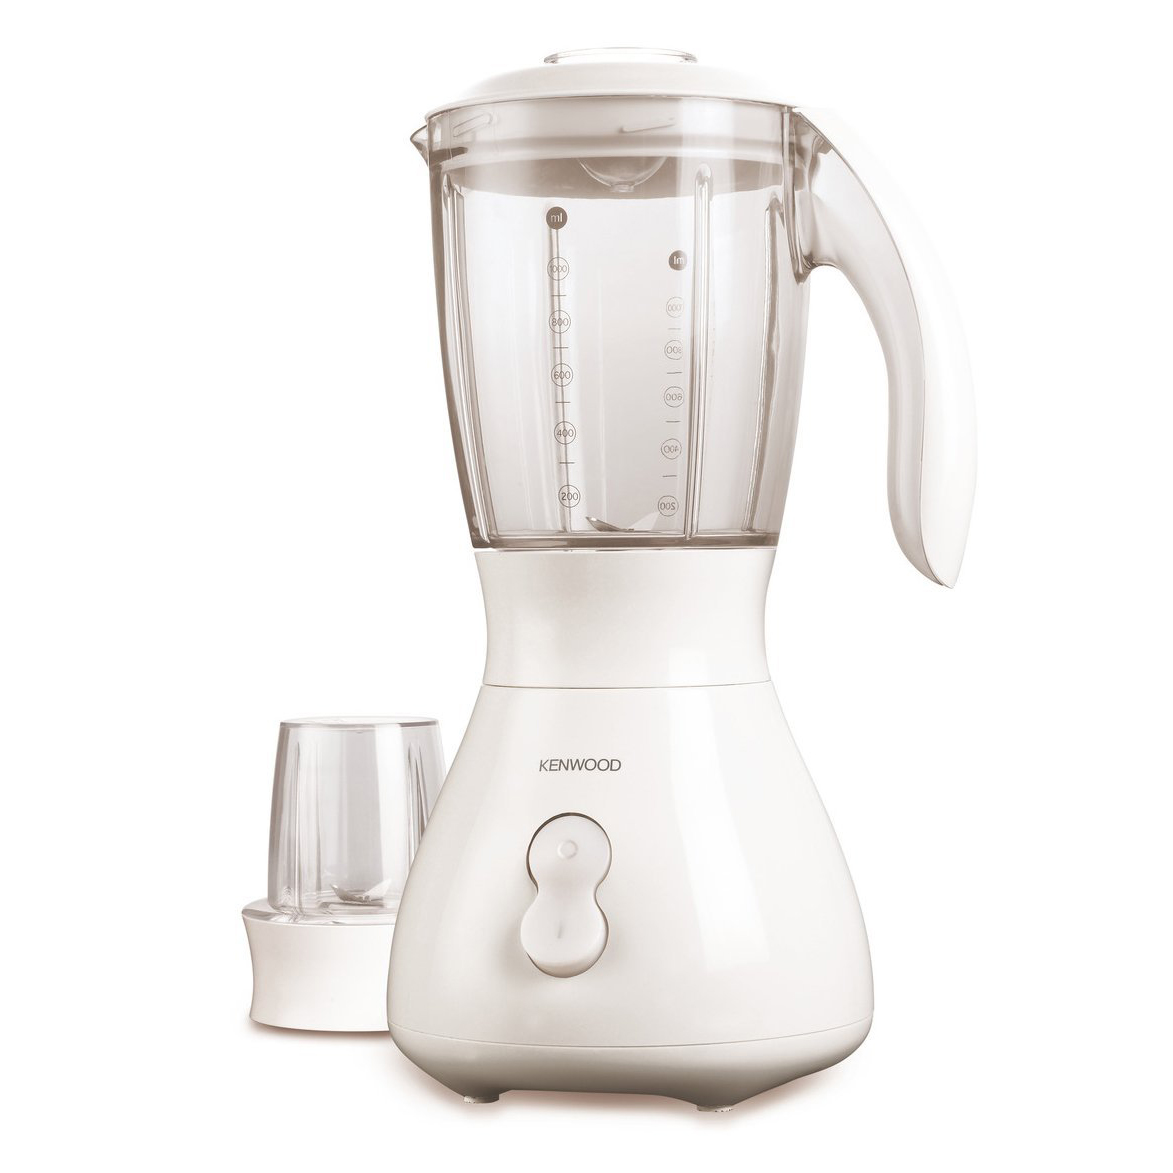 Kenwood BL335 Blender - White